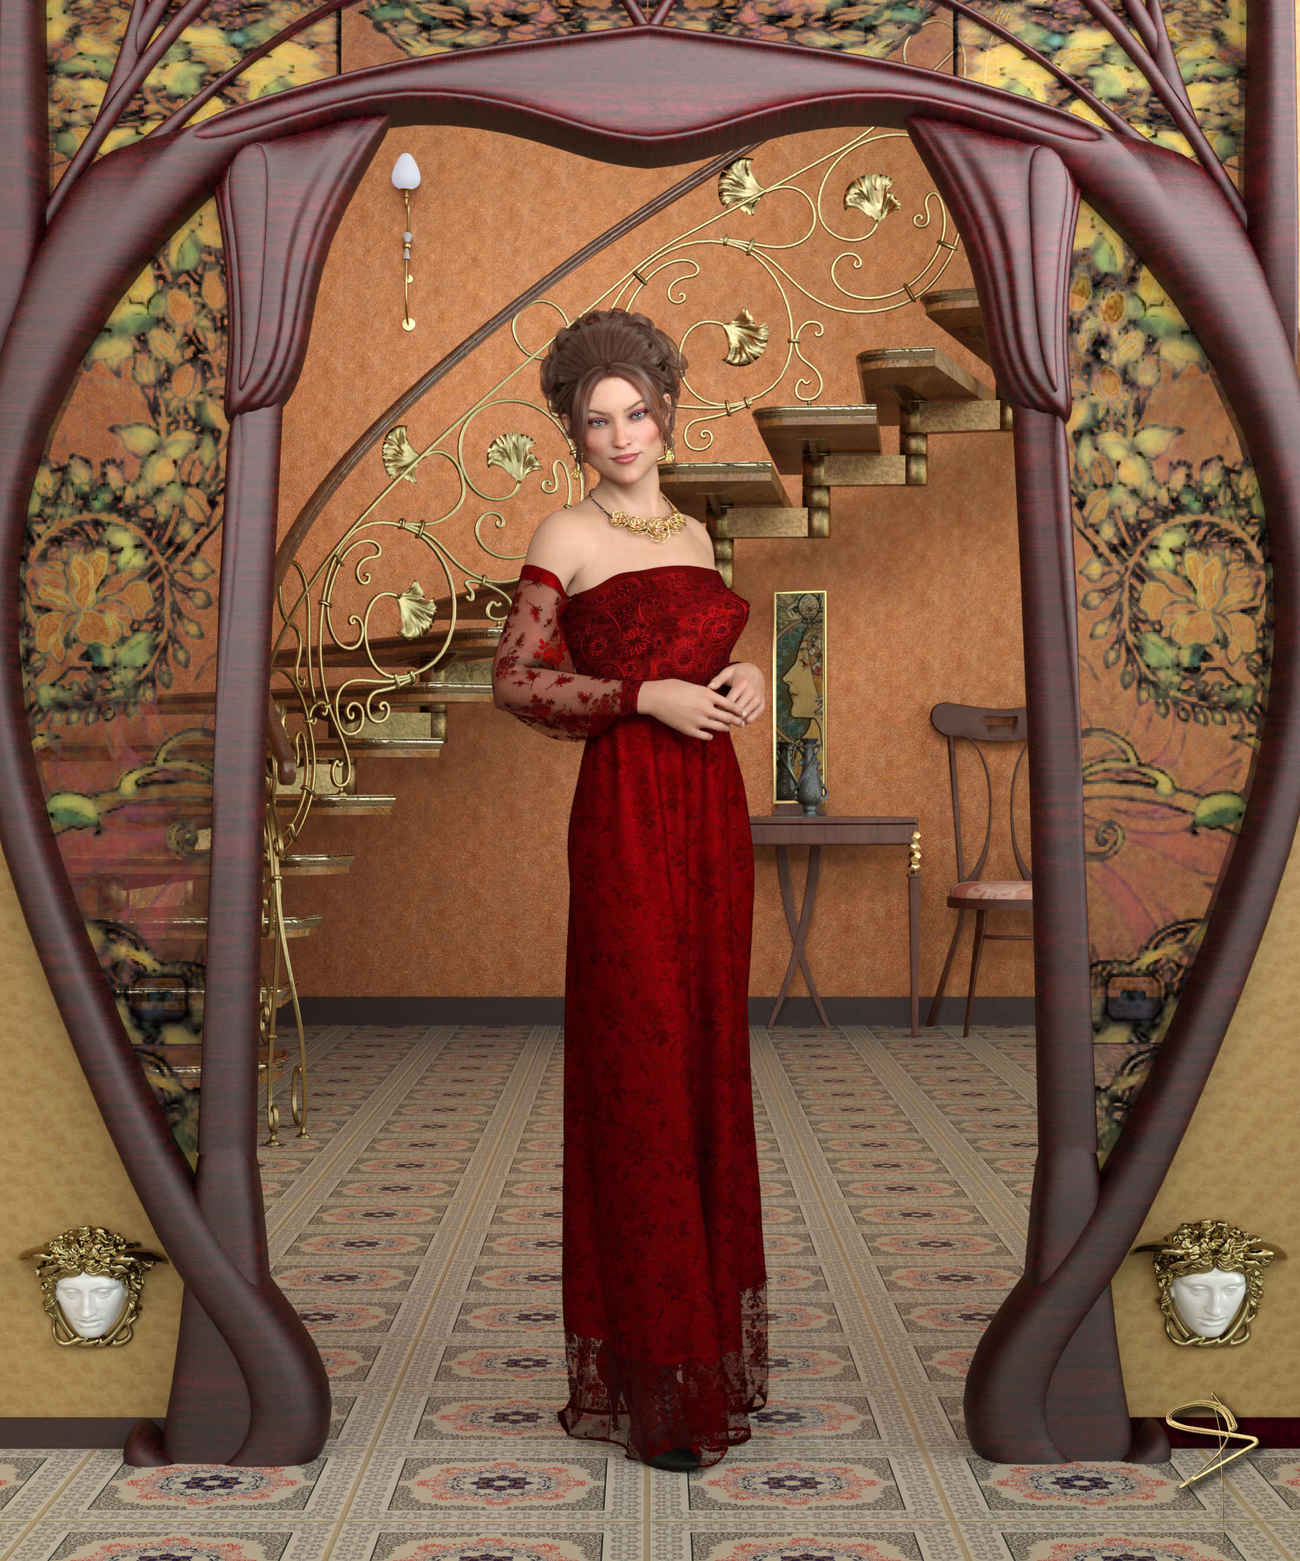 Into the Mirror by speculoos